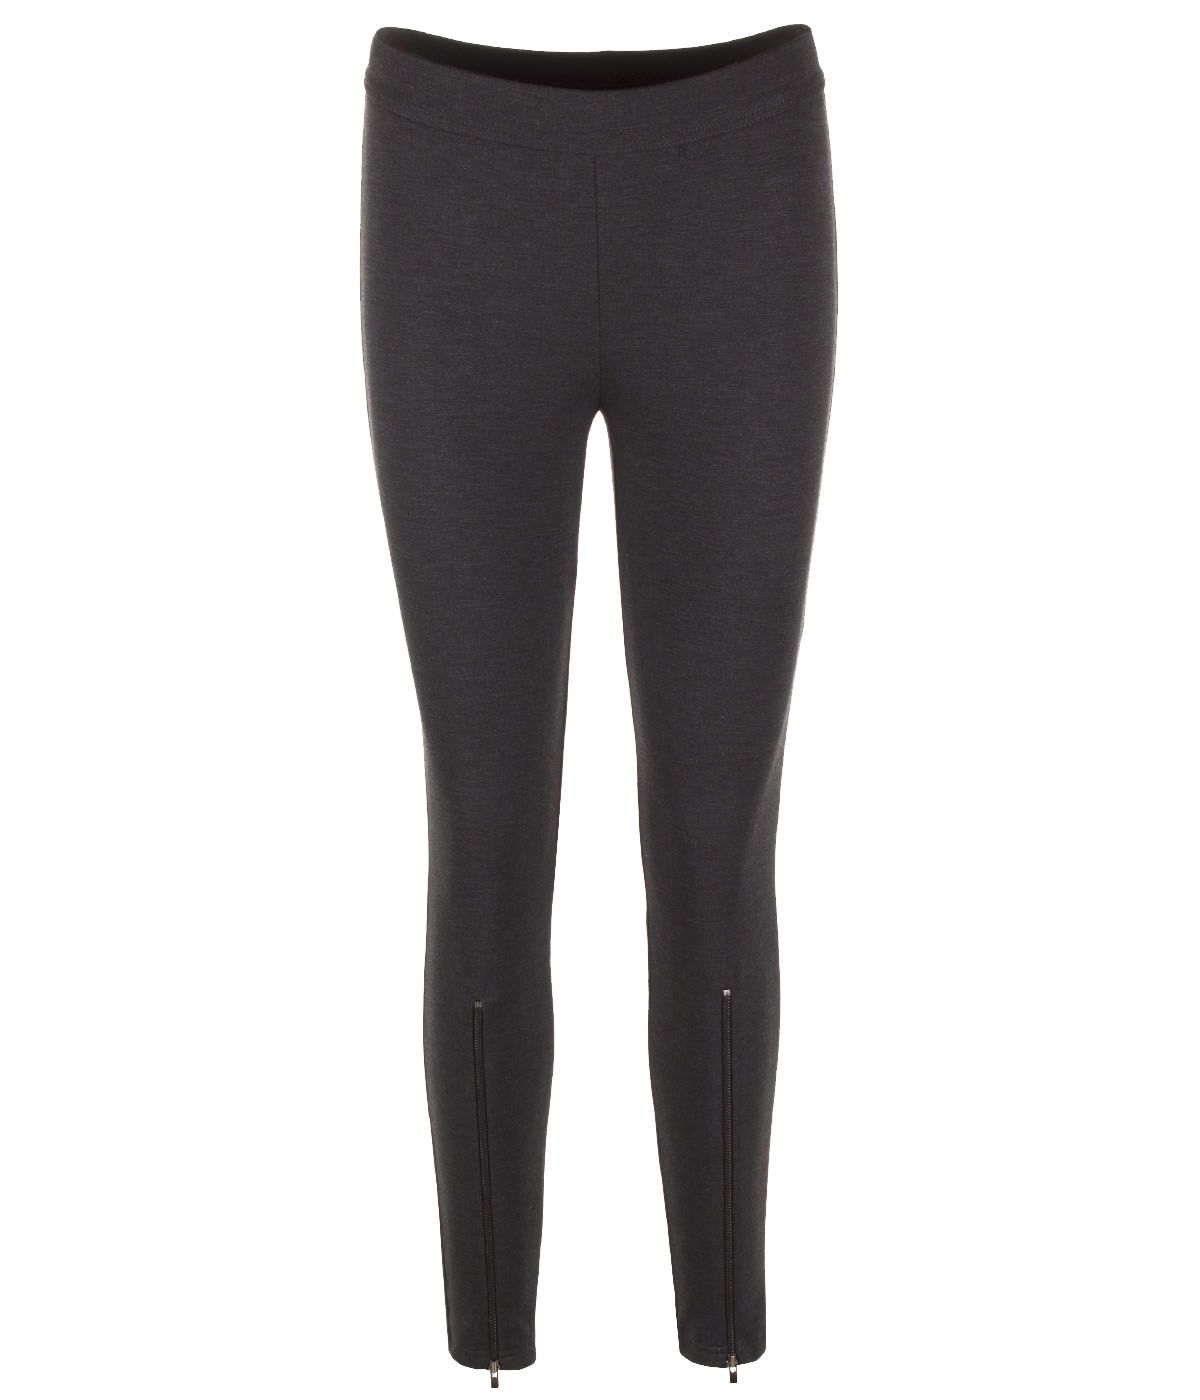 SLIM FIT BLACK LEGGINGS 0